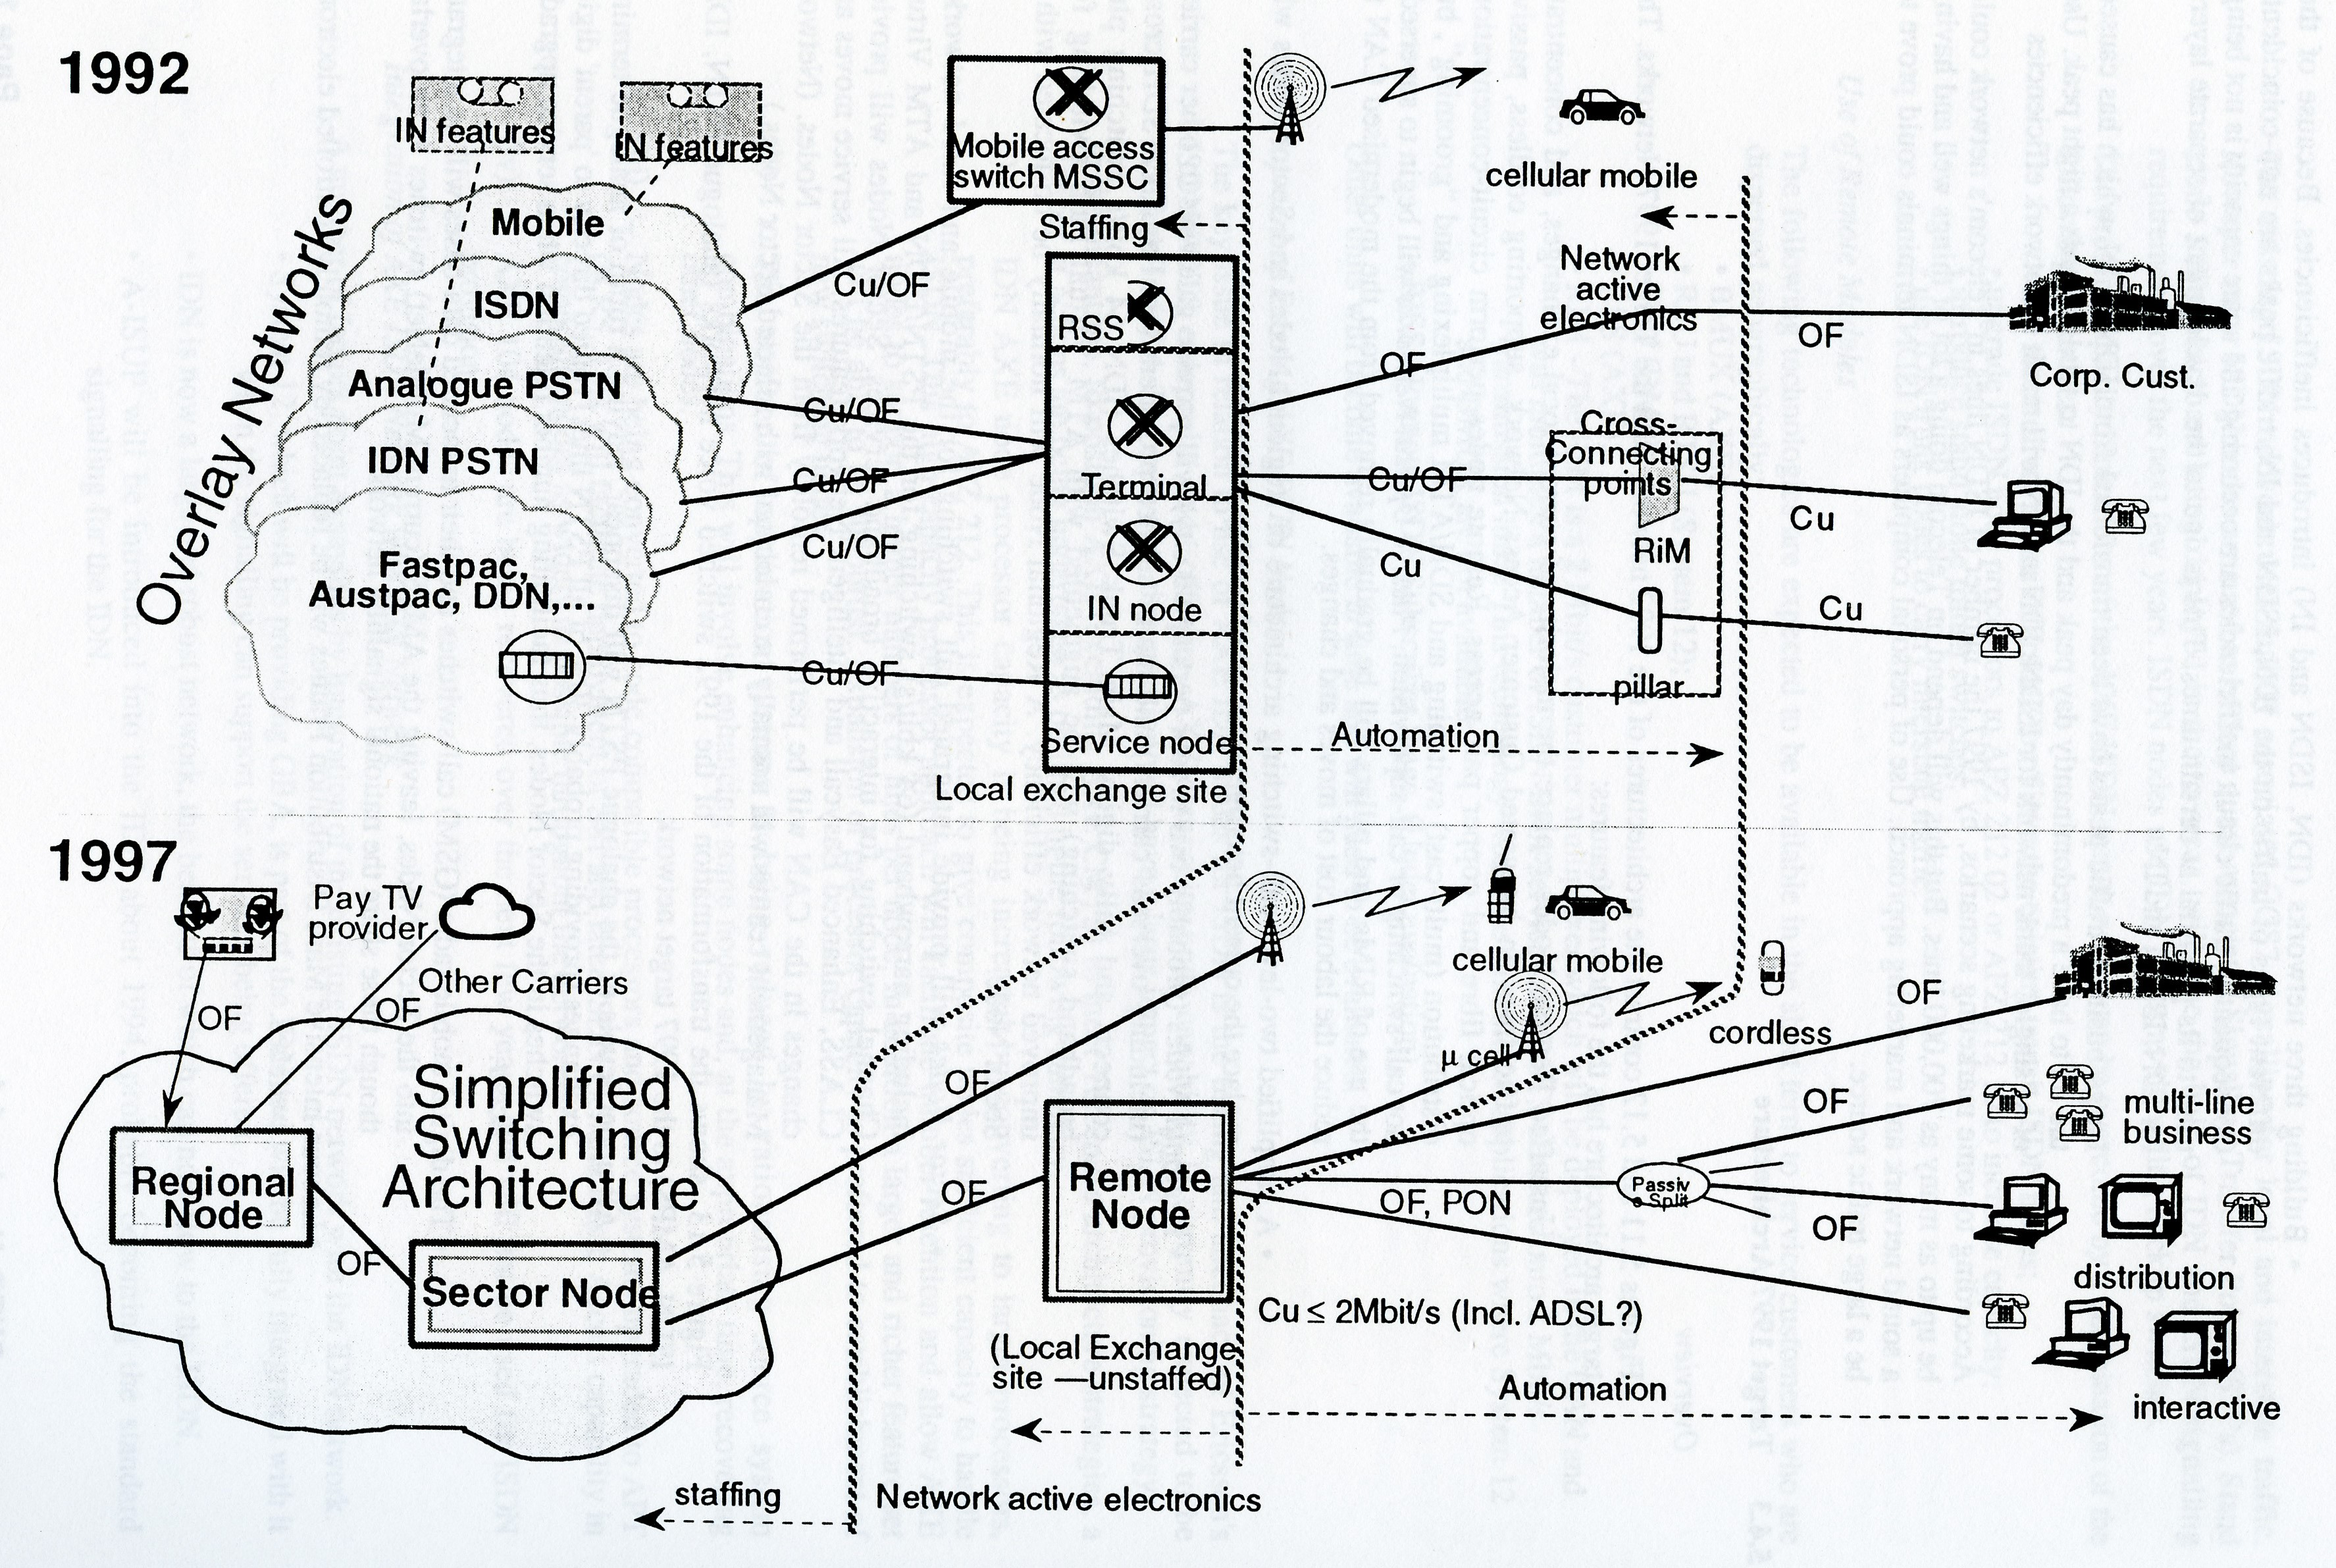 Figure 5. Target Network Architecture - 1992 to 1997